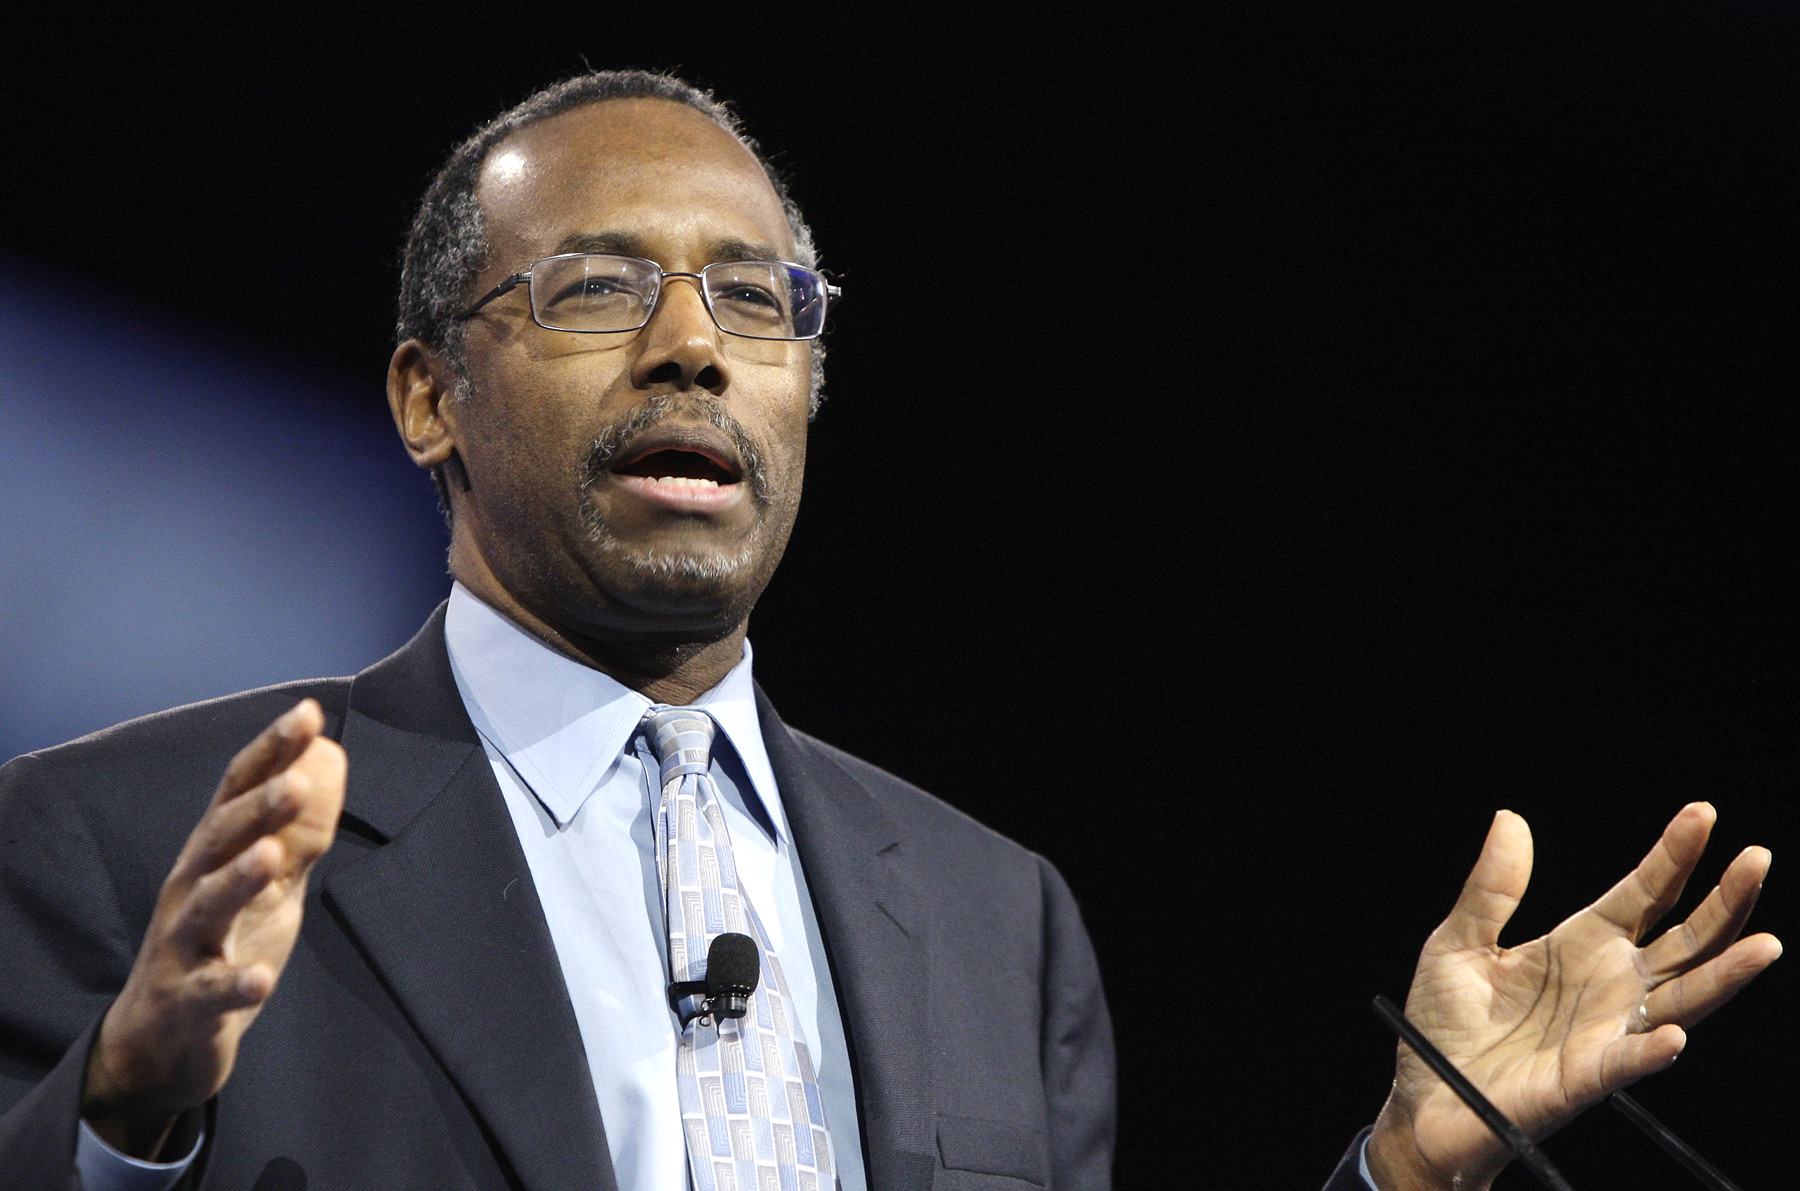 Is Dr. Ben Carson Right About Mindset?